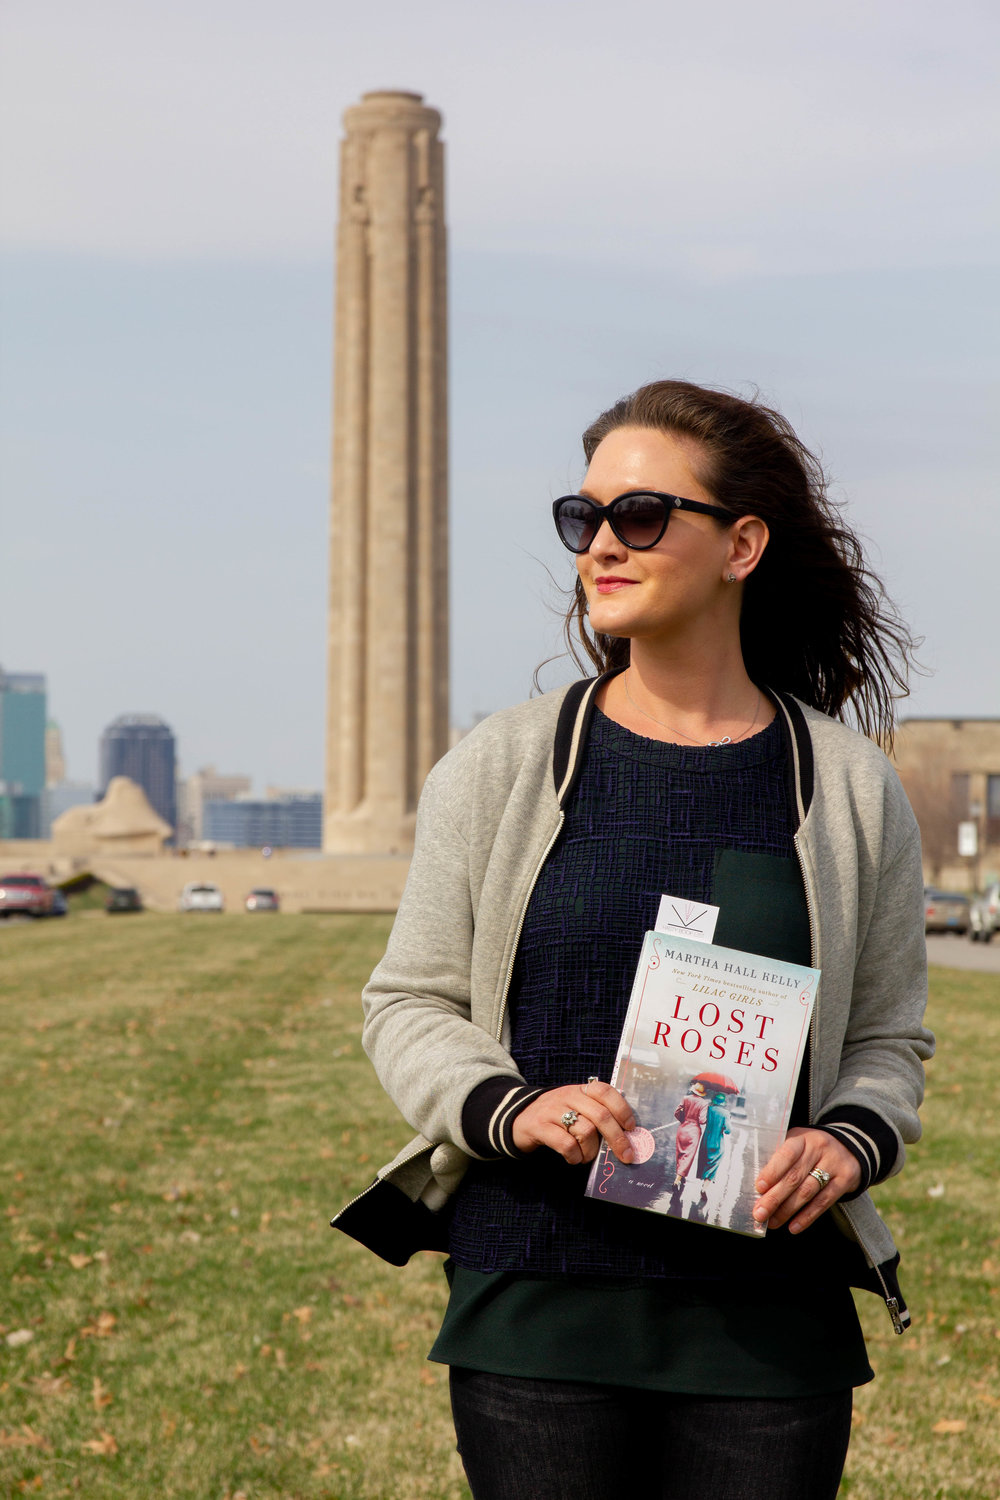 Reading Lost Roses by Martha Hall Kelly at the National WWI Museum and Memorial in Kansas City, MO